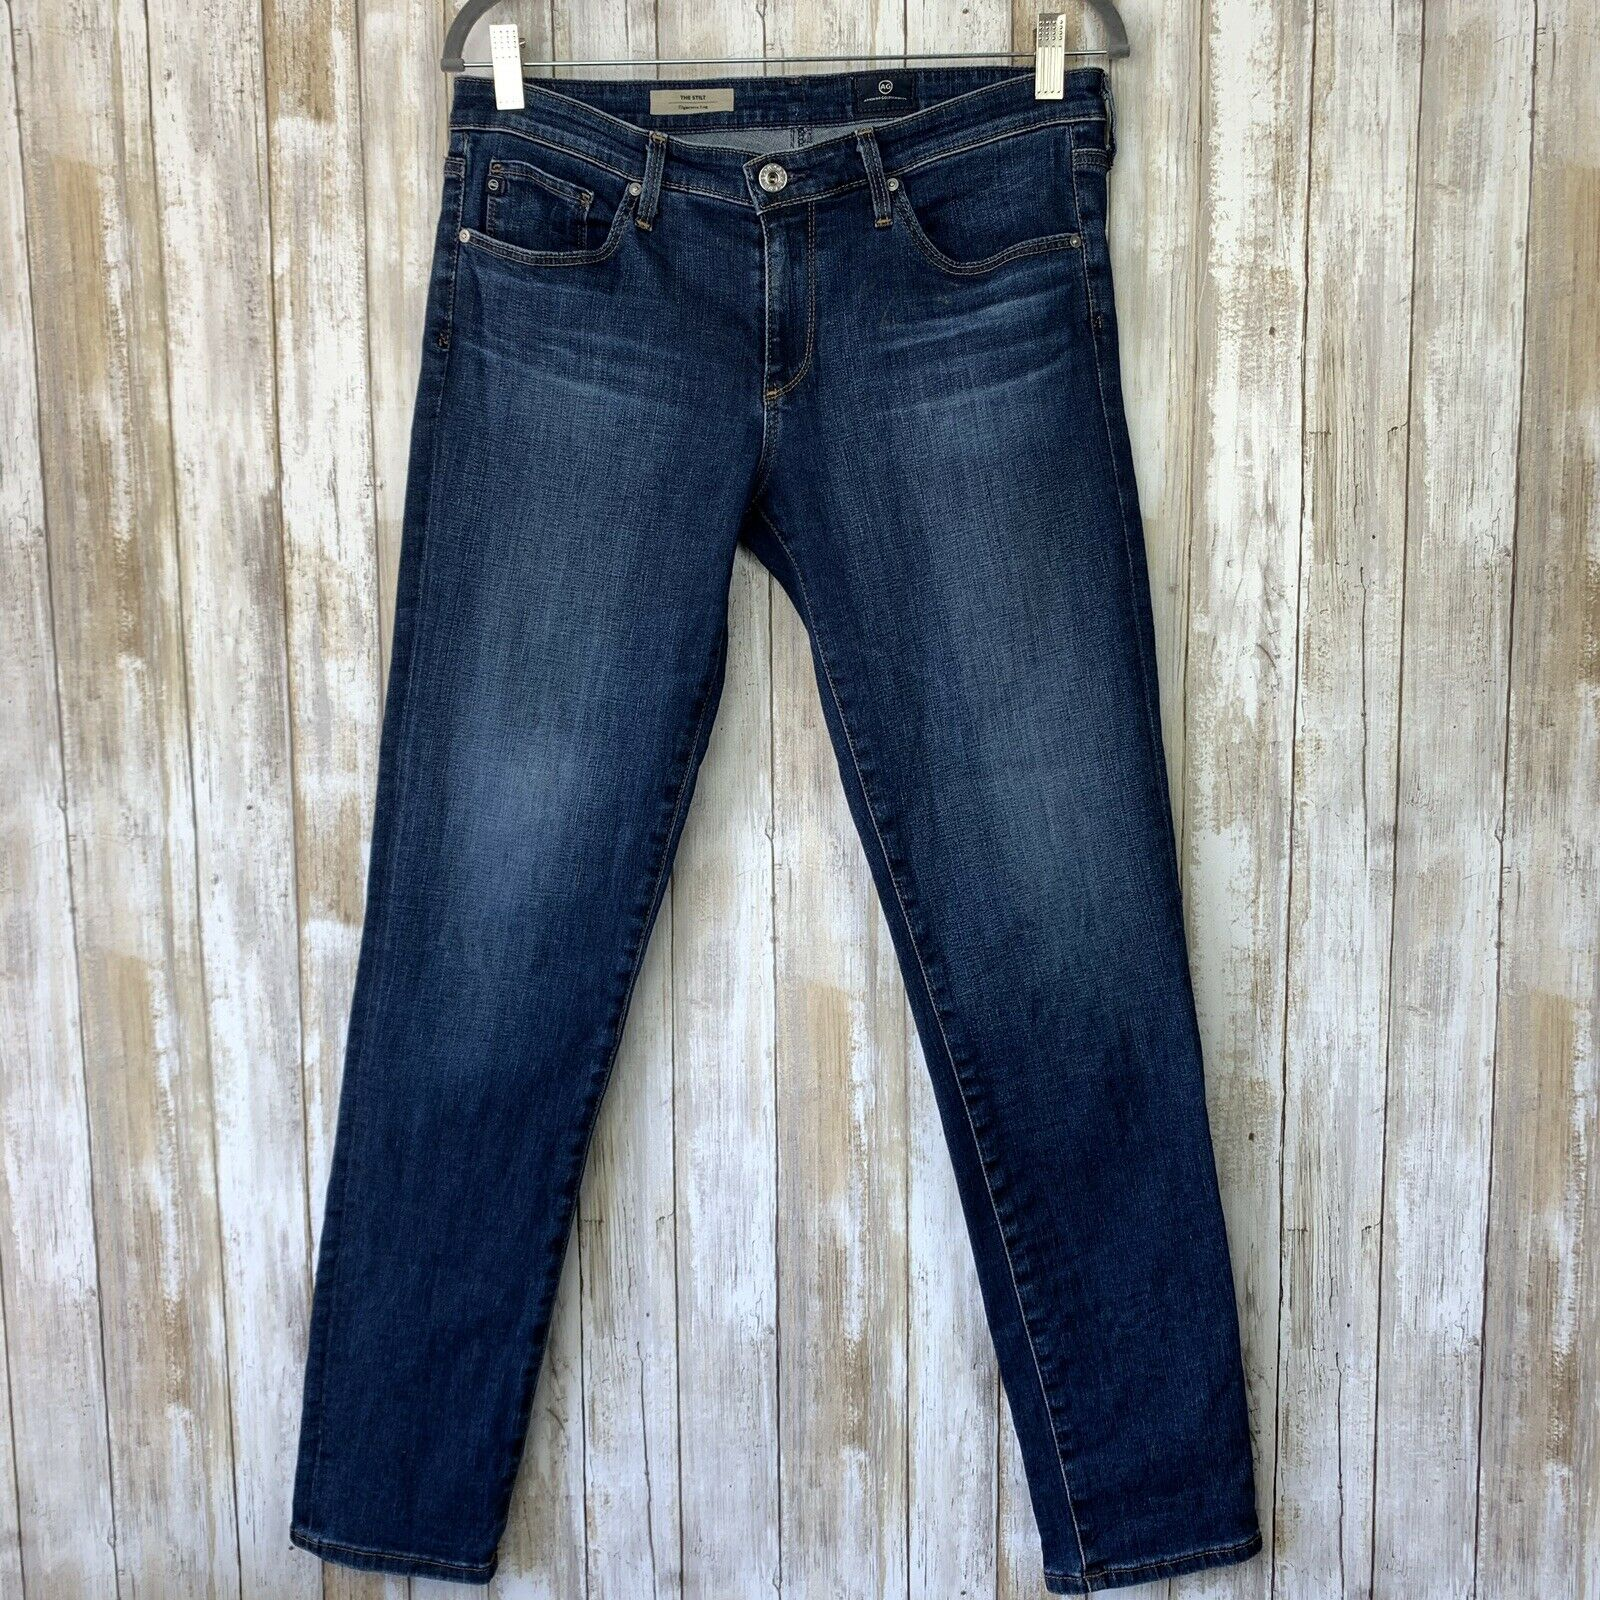 AG Adriano goldschmied Stilt Jeans Stretch Cigarette Skinny Leg 30 bluee Wash